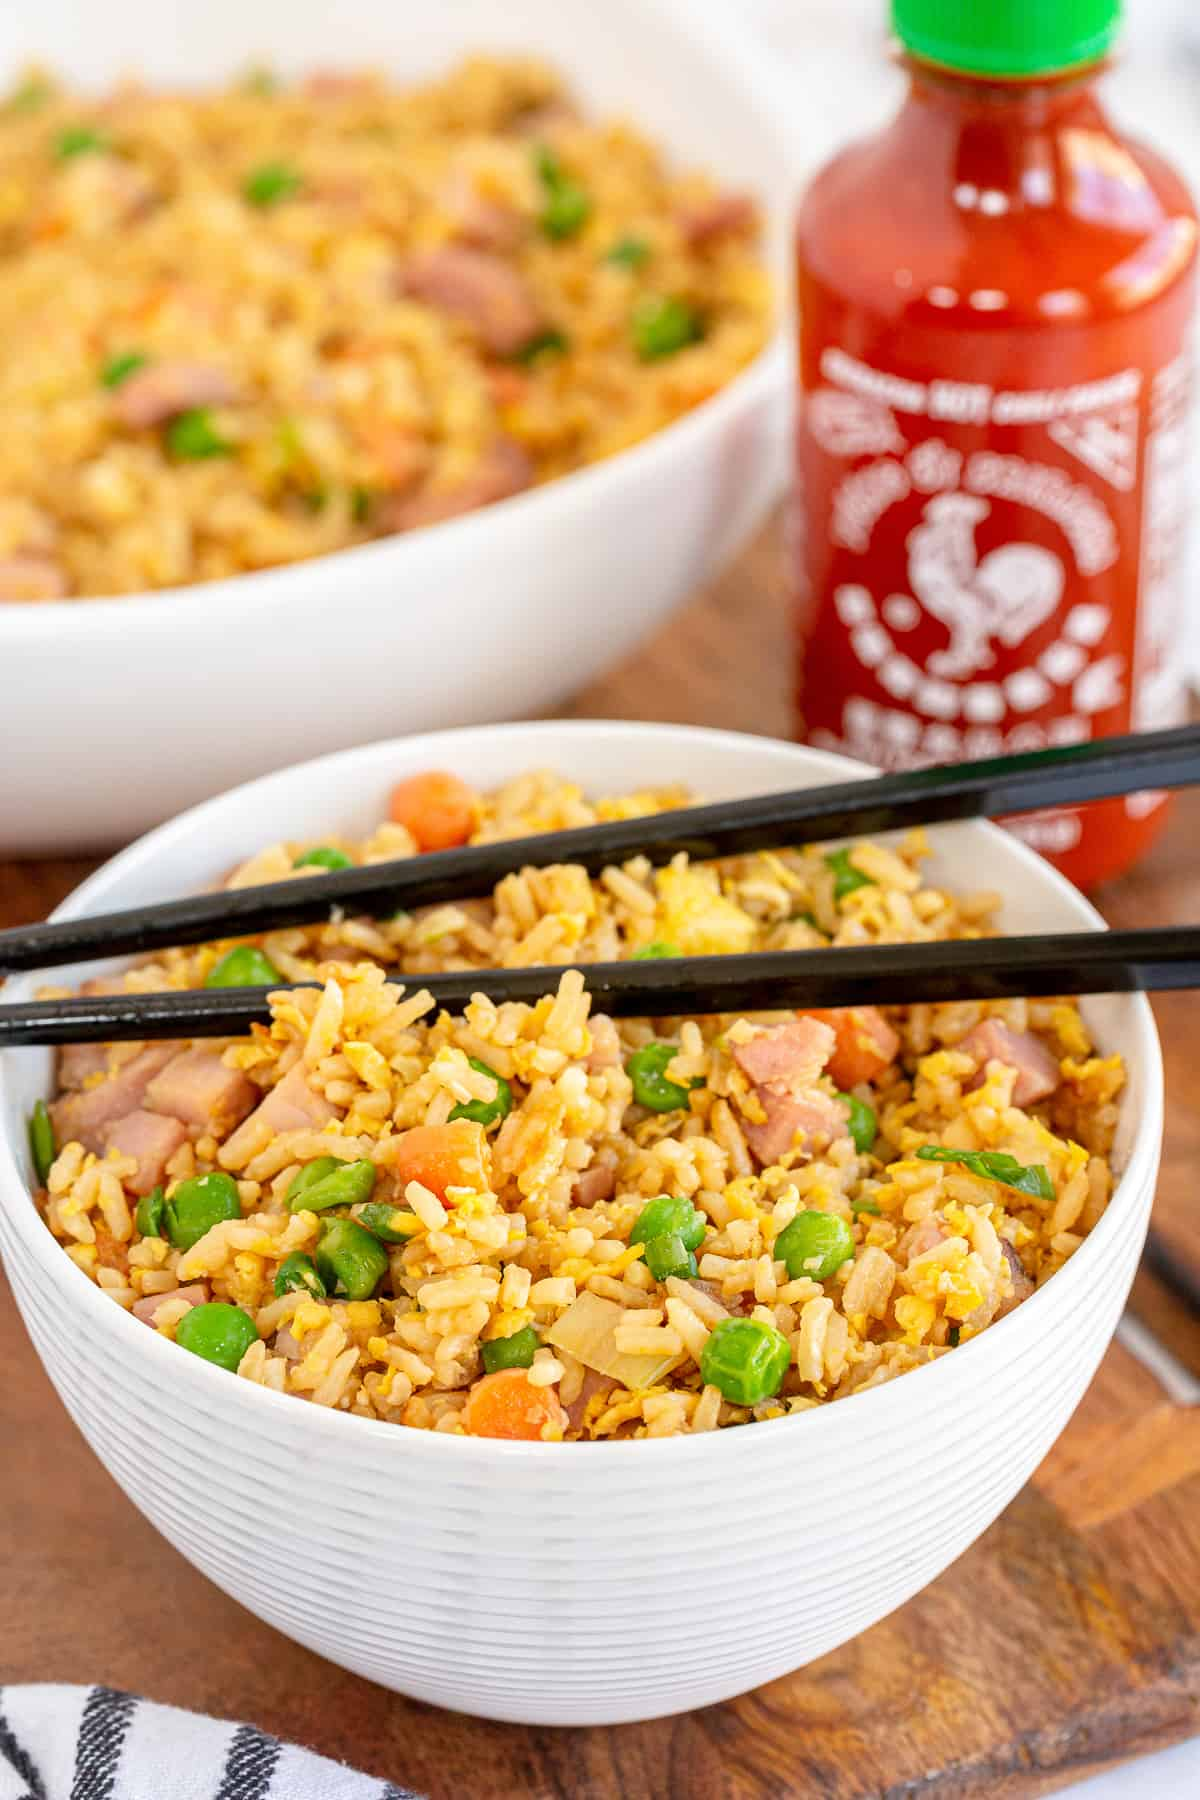 A bowl of fried rice with a bottle Sriracha behind it.